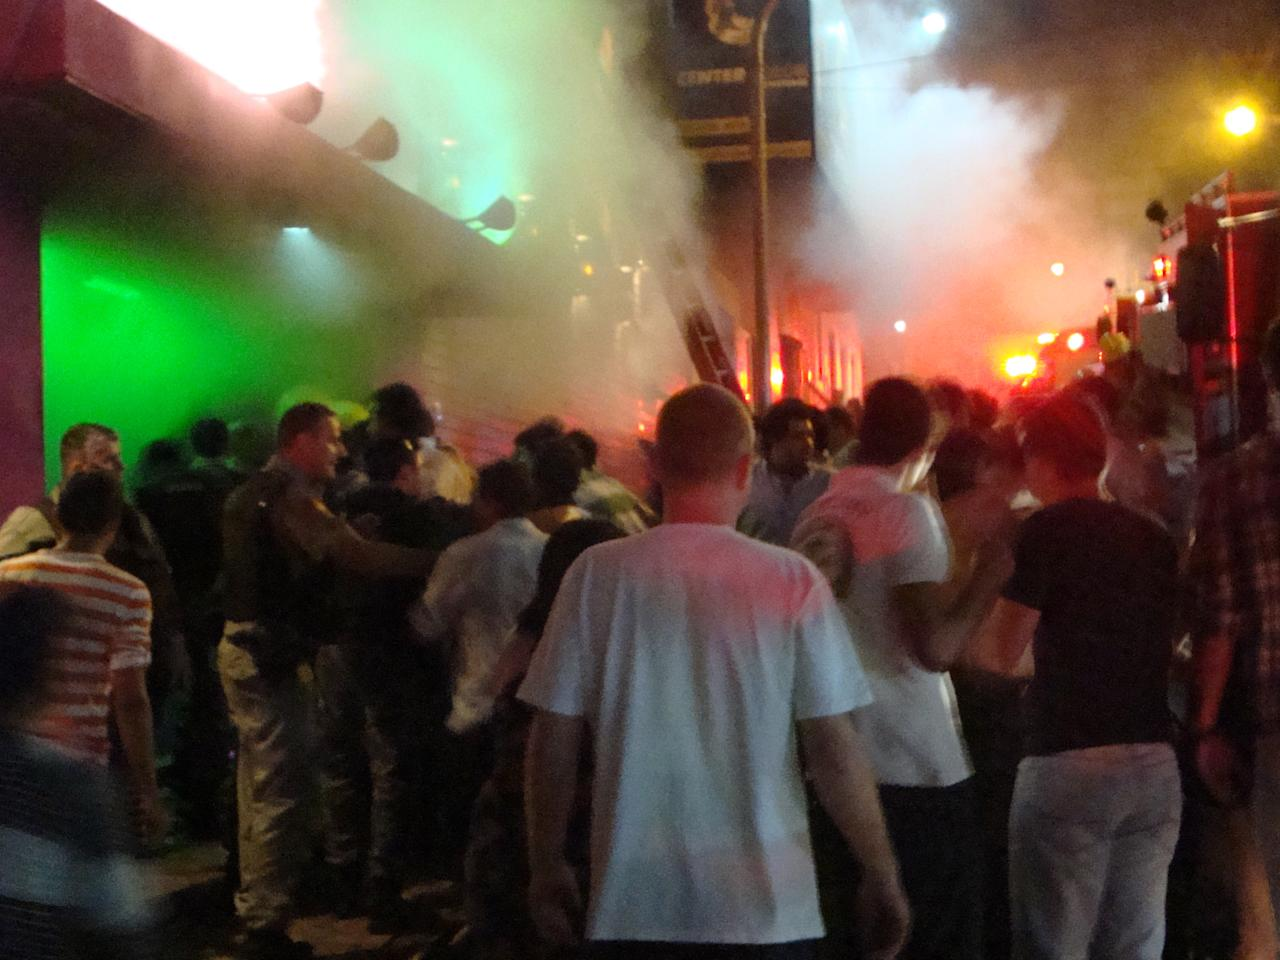 A crowd stands outside the Kiss nightclub during a fire inside the club in Santa Maria city, Rio Grande do Sul state, Brazil, Sunday, Jan. 27, 2013. A blaze raced through the crowded nightclub in southern Brazil early Sunday, killing 245 people as the air filled with deadly smoke and panicked party-goers stampeded toward the exits, police and witnesses said. It appeared to be the world's deadliest nightclub fire in more than a decade.(AP Photo/Roger Shlossmacker)